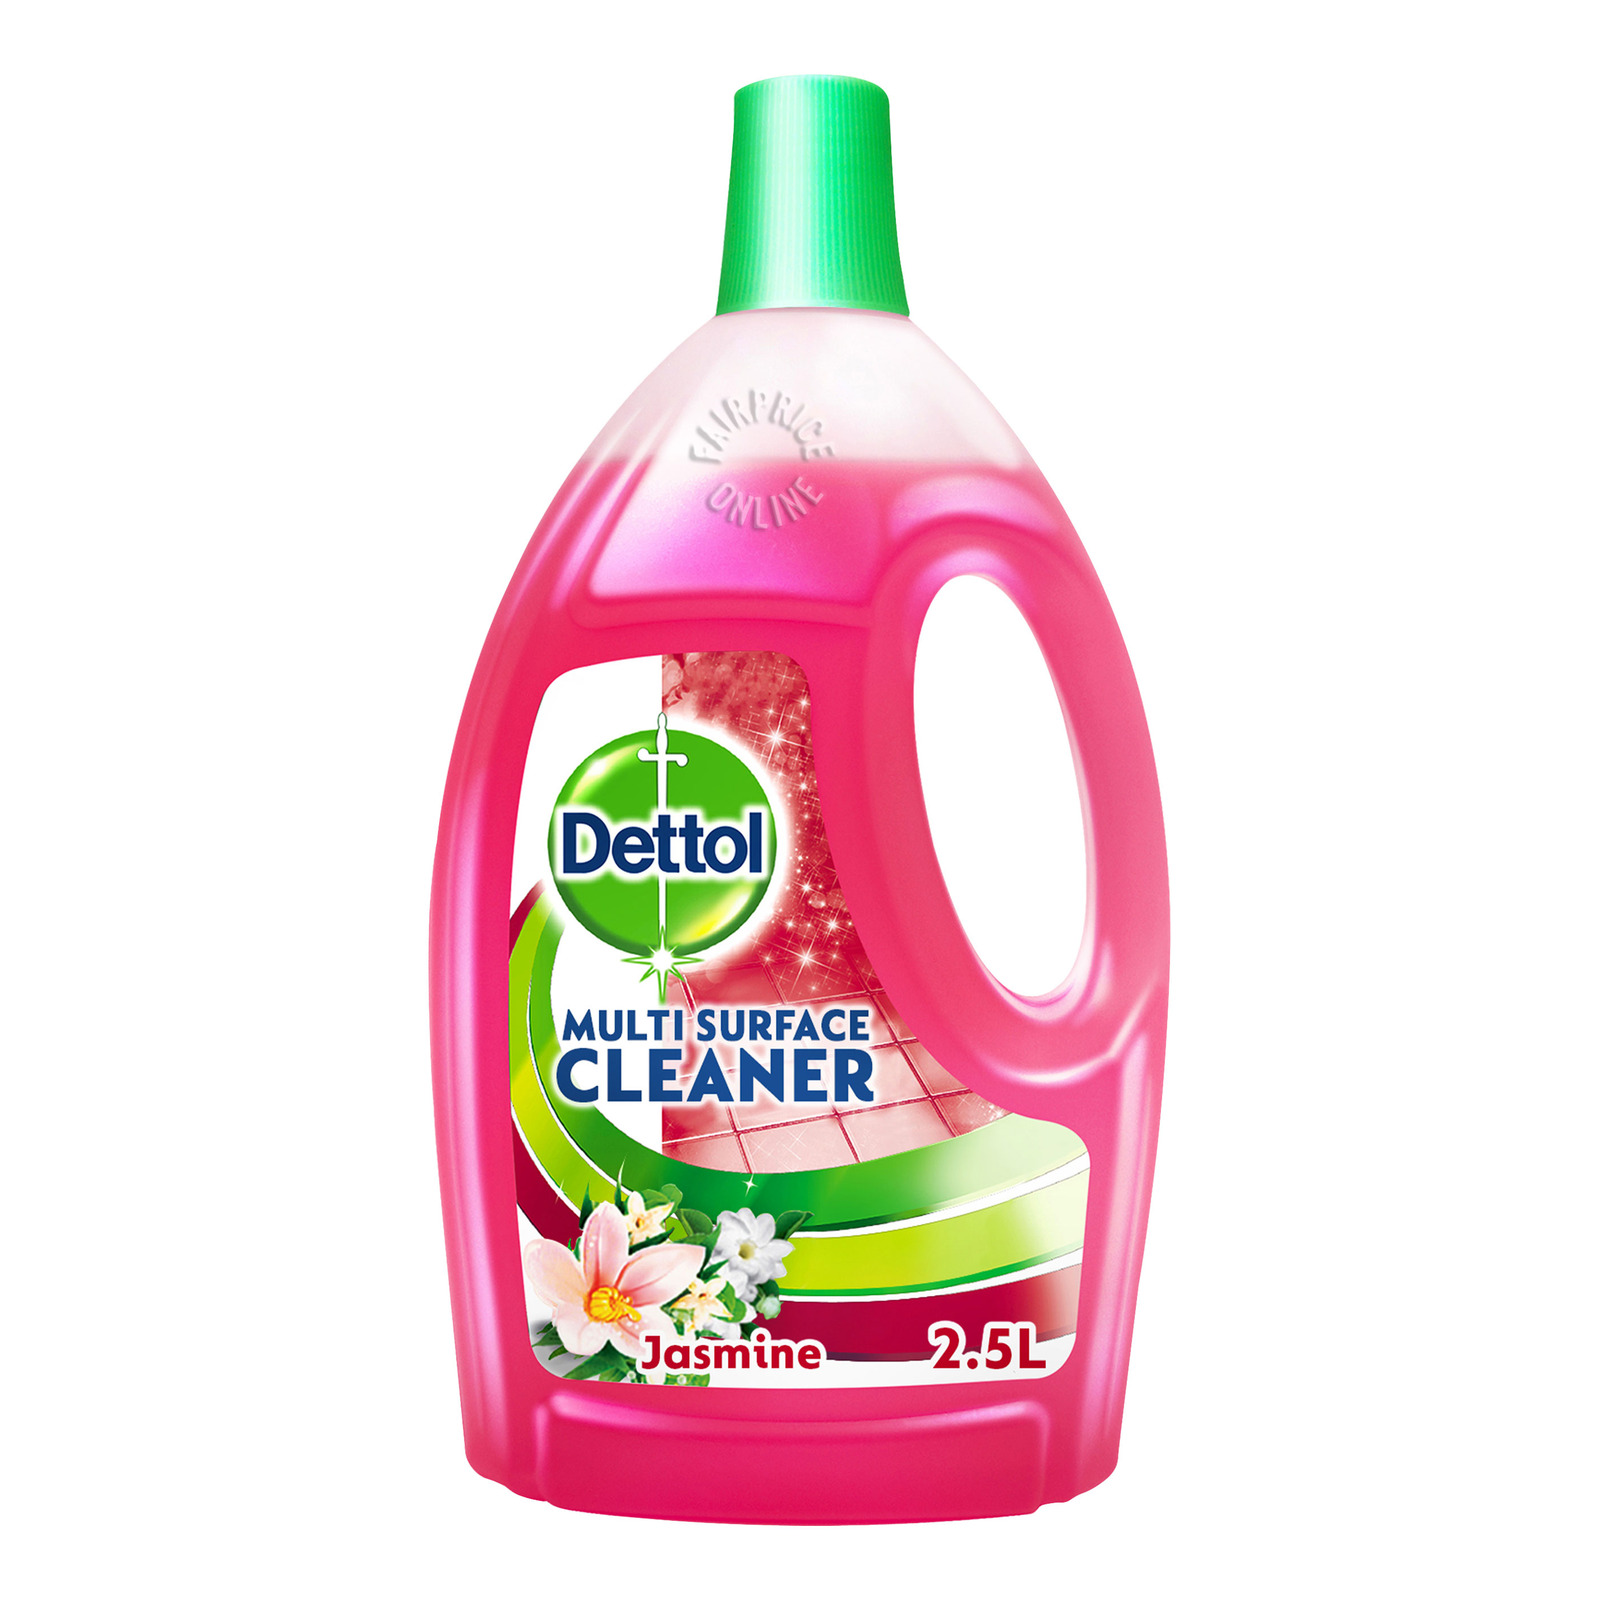 Dettol 4 in 1 Multi Surface Cleaner - Jasmine